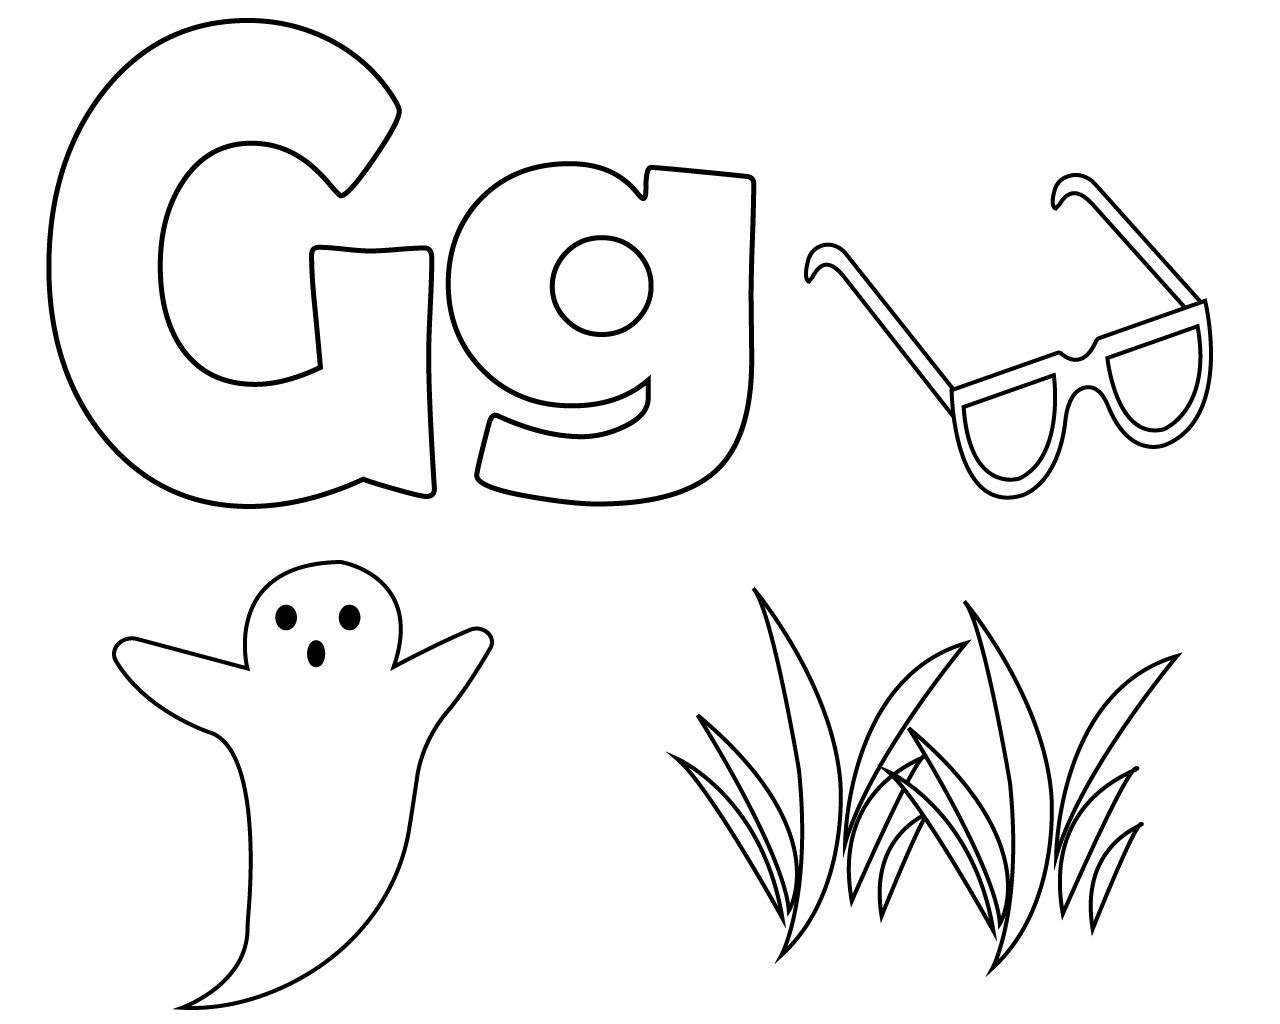 Letter G Coloring Pages Preschool Alphabet Coloring Pages Coloring Pages Printable Coloring Pages